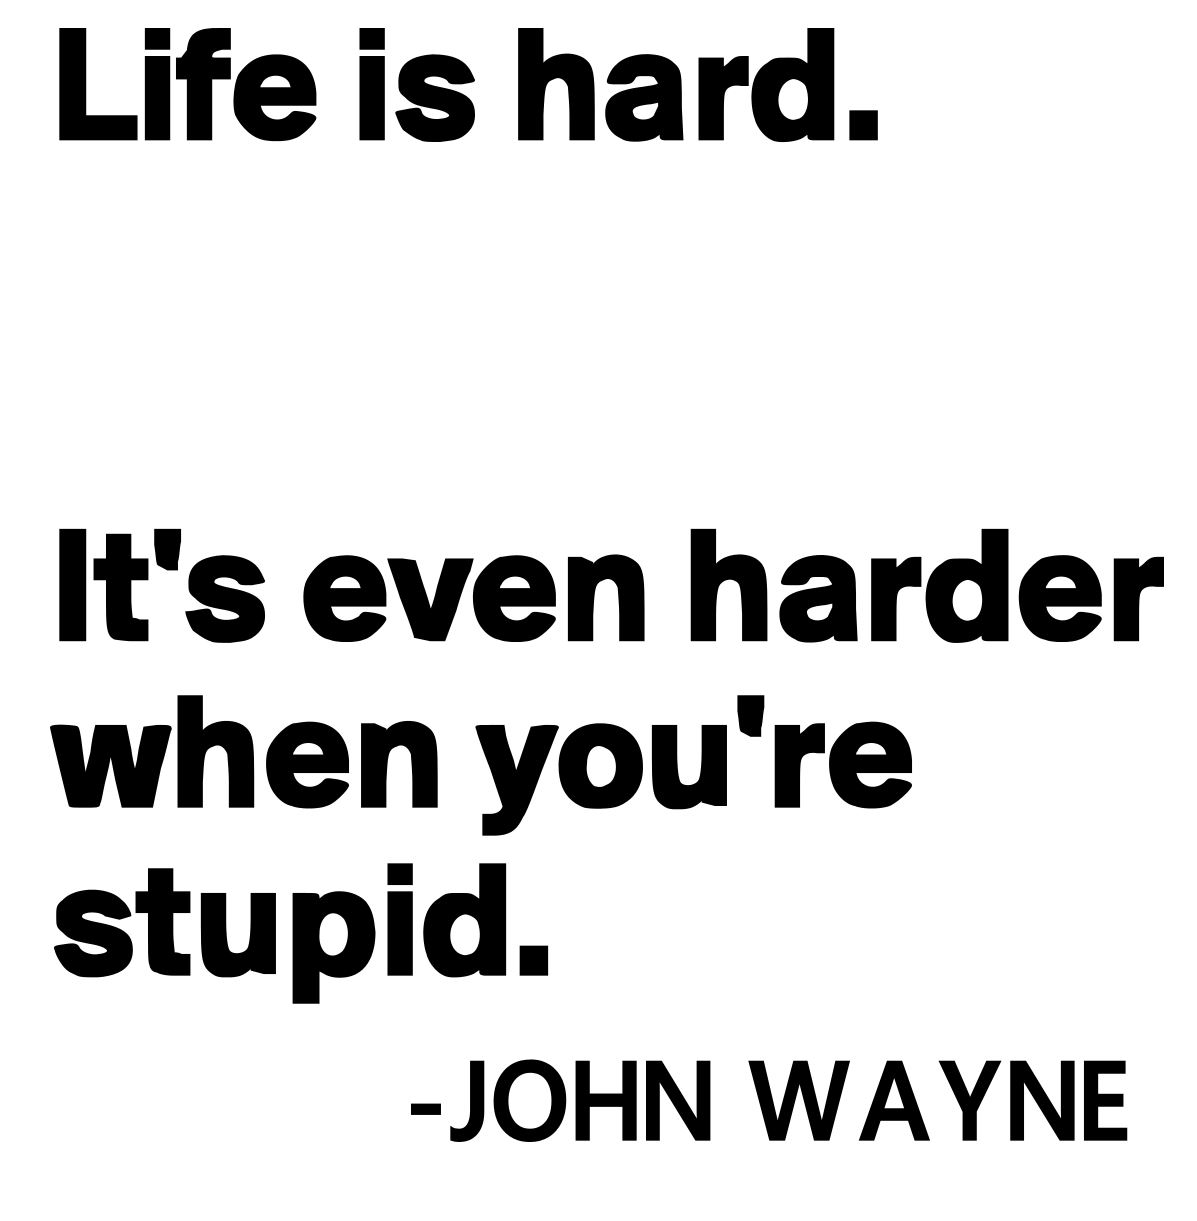 Life is hard, John Wayne